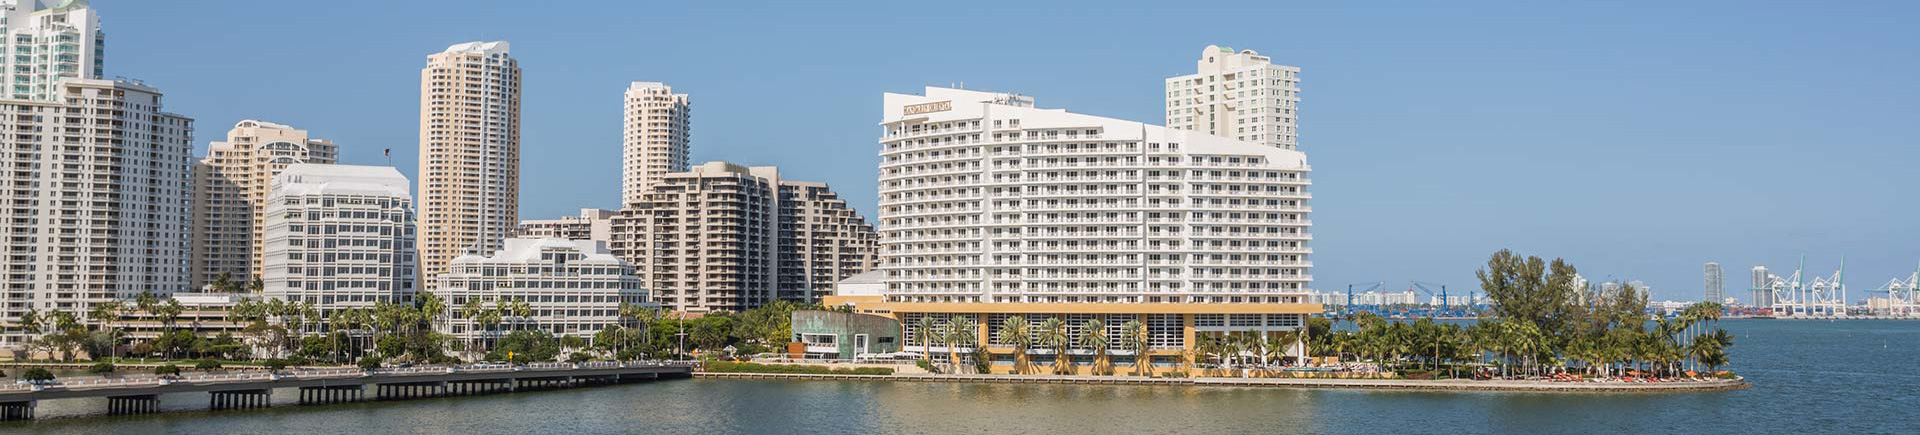 Yacht Club at Brickell Apartments in Miami, FL - Panoramic Views of the Bay